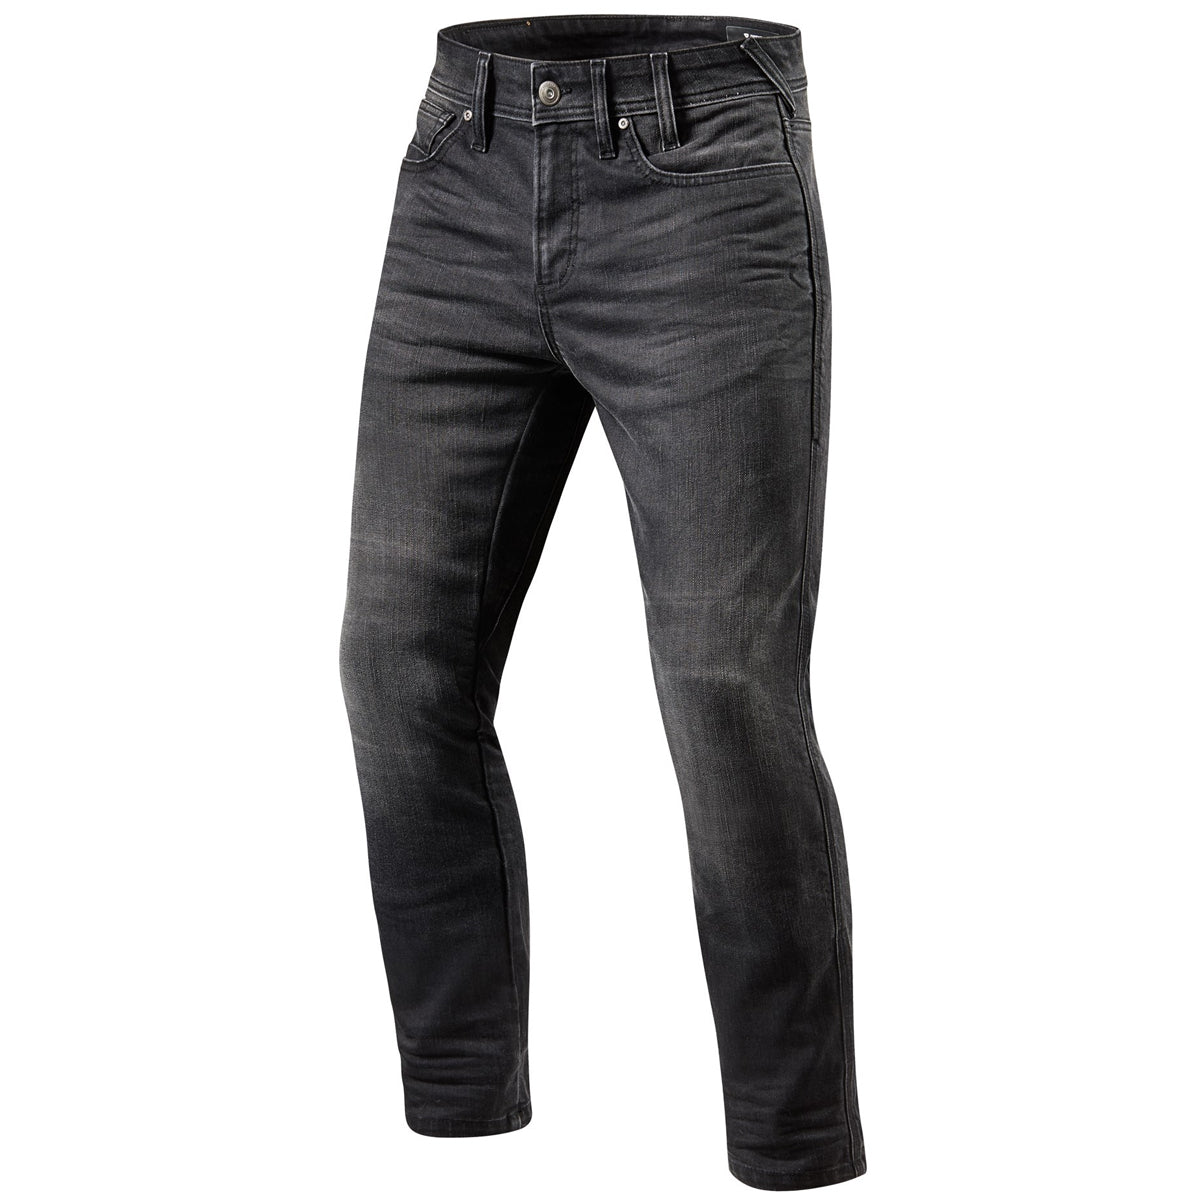 REV'IT! BRENTWOOD Riding Jeans